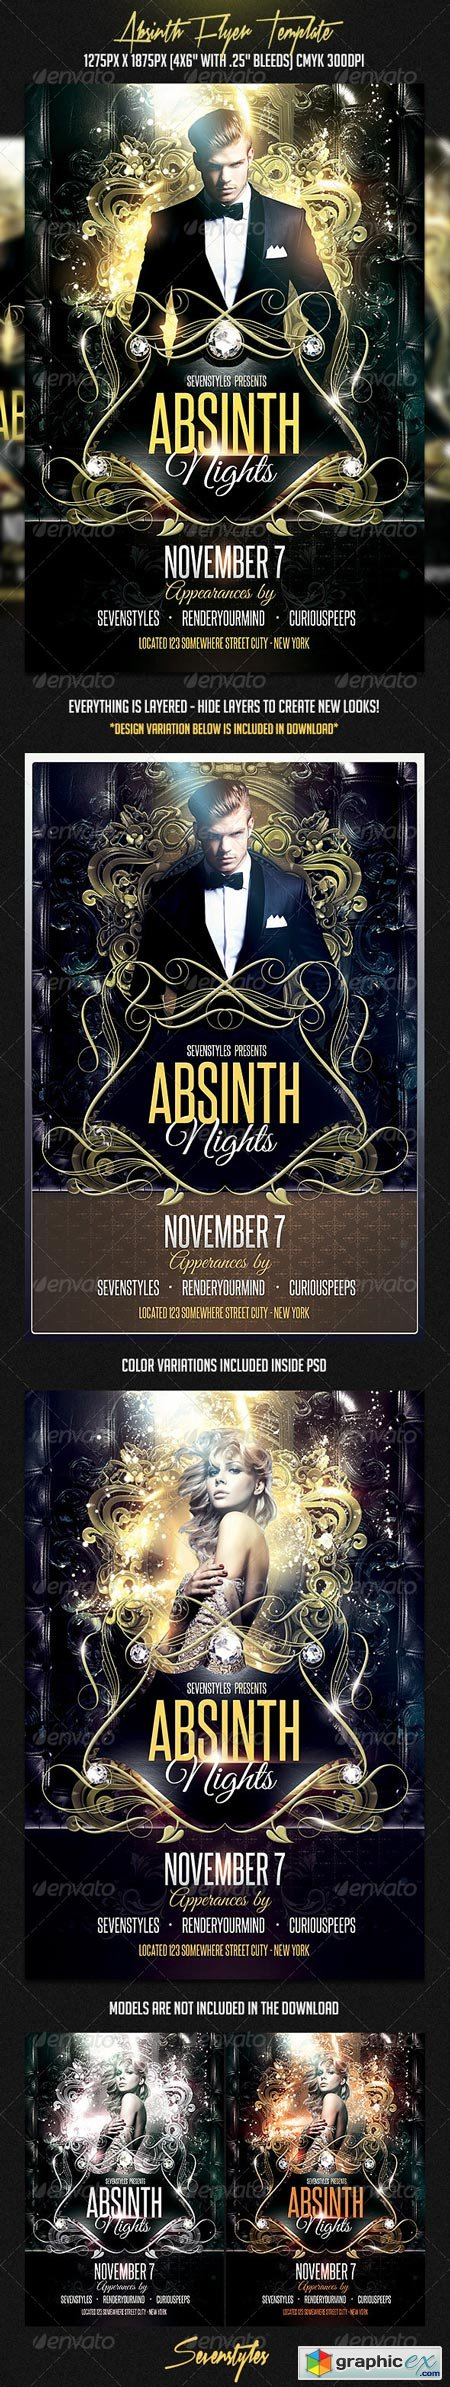 Absinth Flyer Template 7317229